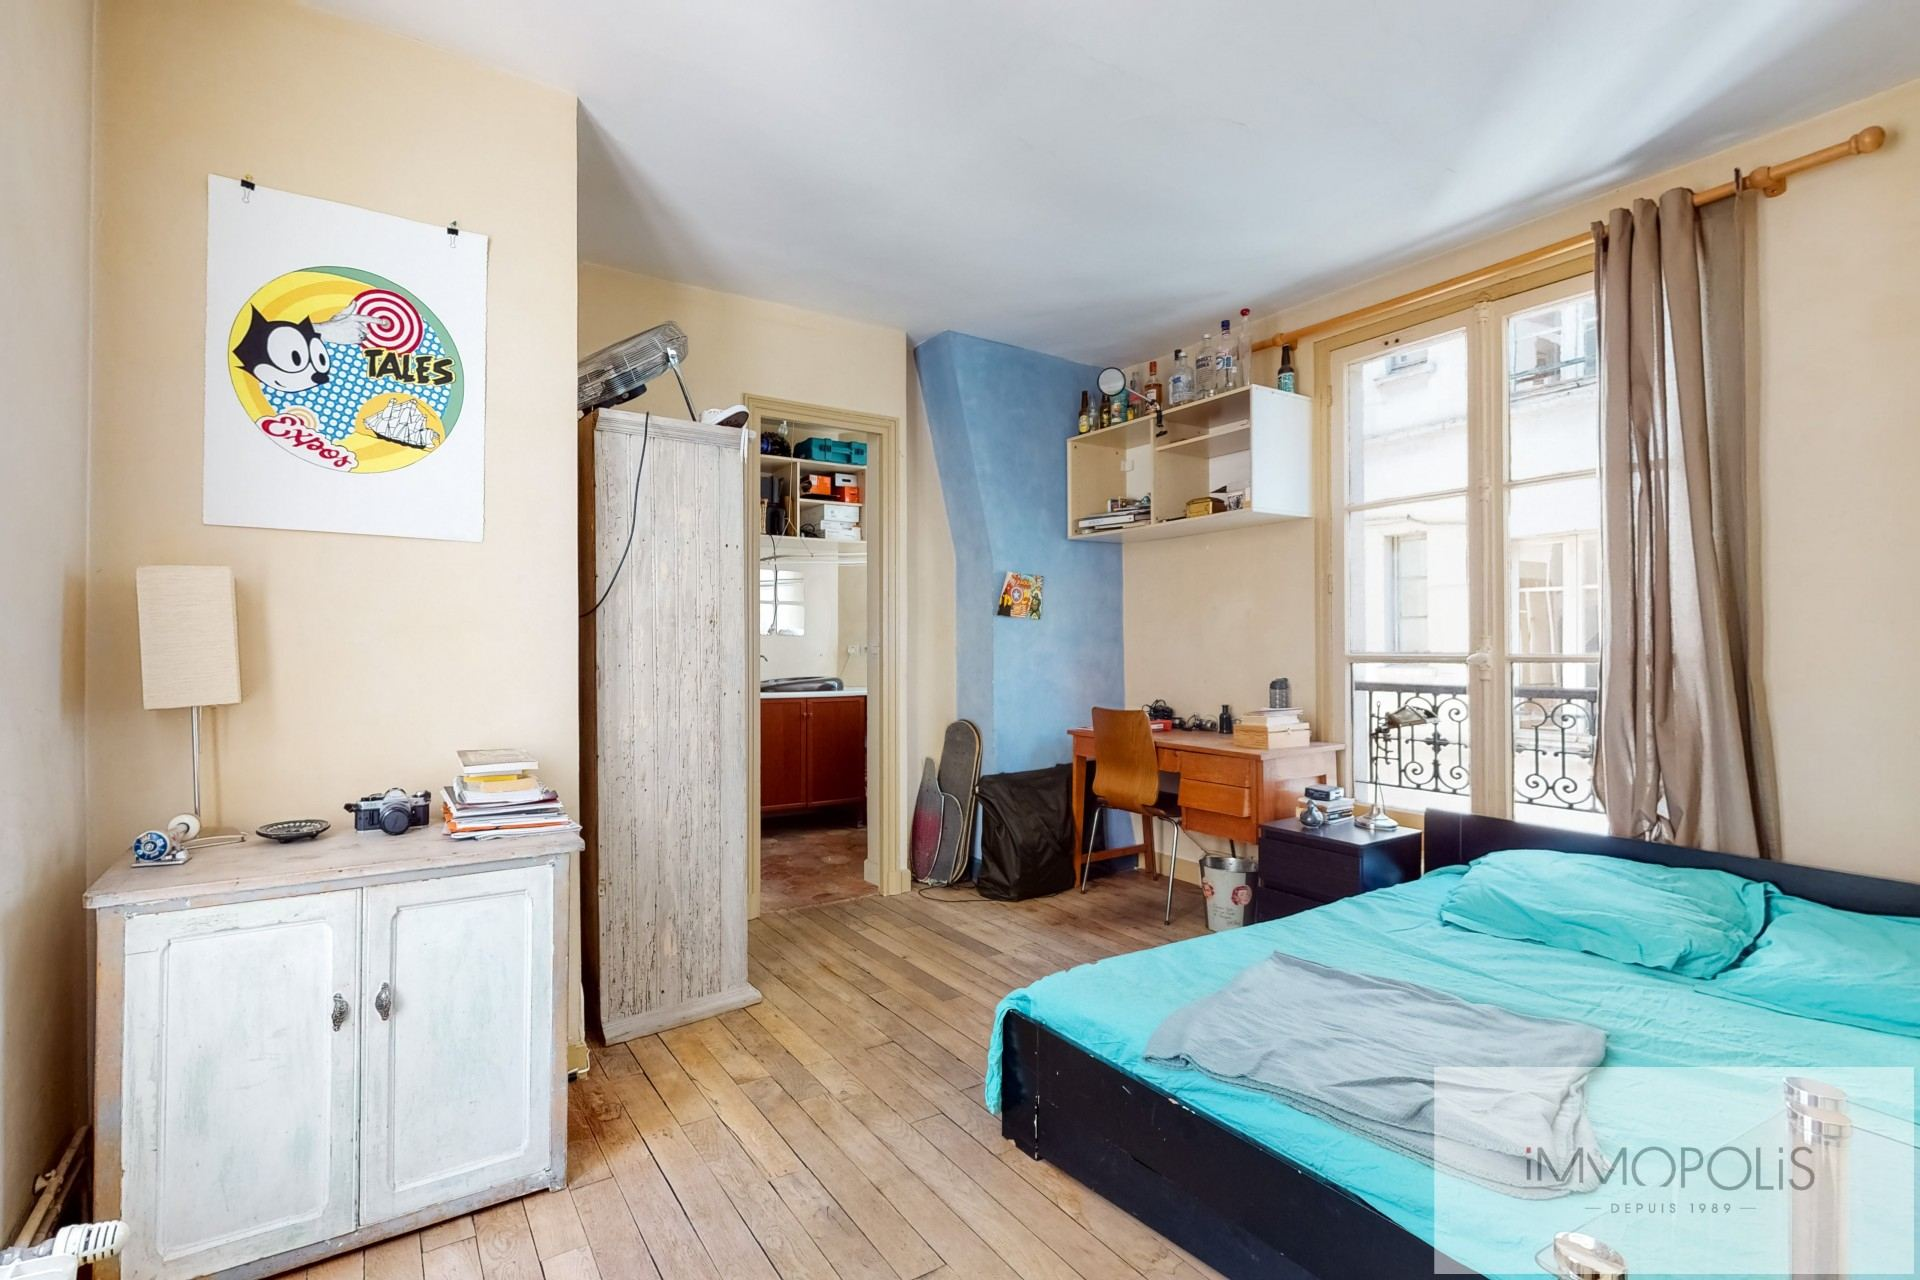 Appartement atypique, plein de charme, Rue Richard Lenoir – Paris XIème 5